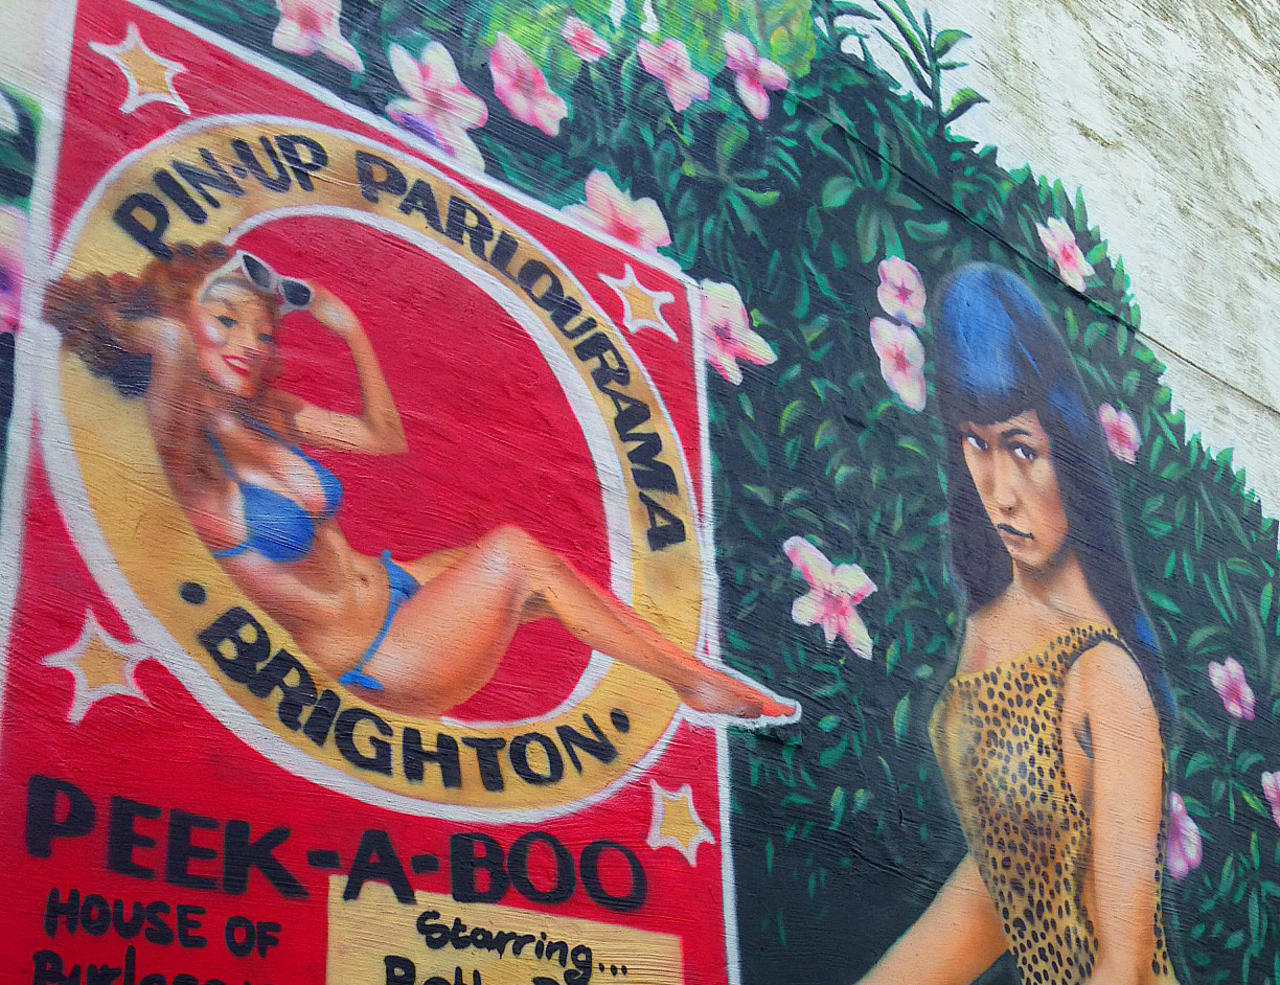 Pin Up Parlourama, Brighton & Hove Images - 16